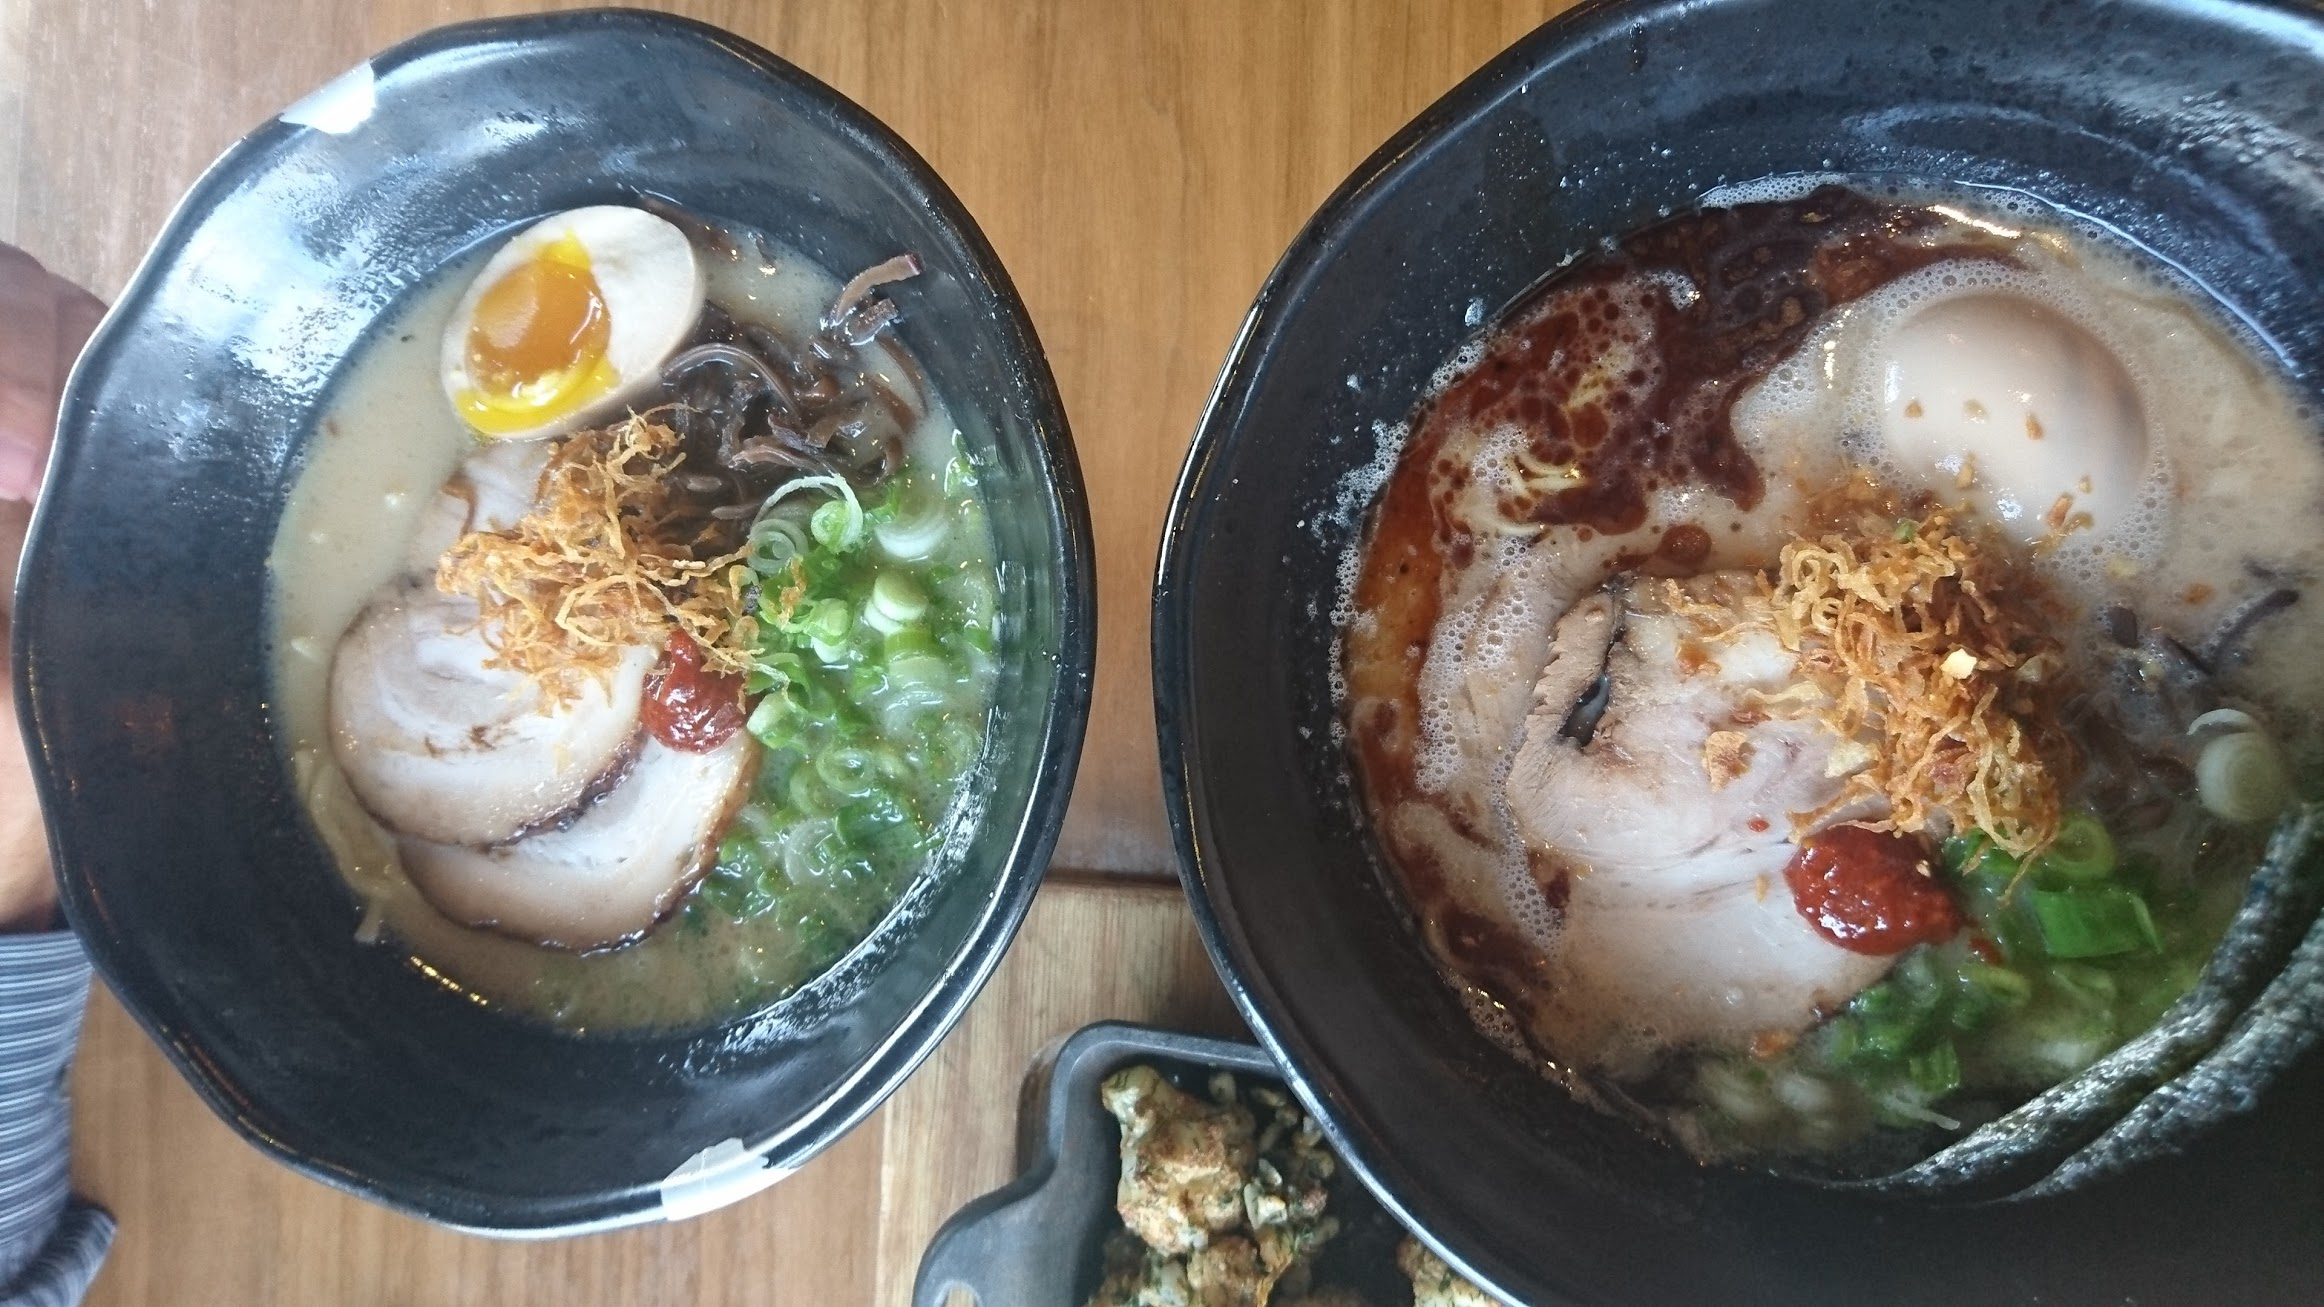 12 variations of ramen available - including pork, chicken, and vegetarian based broths.